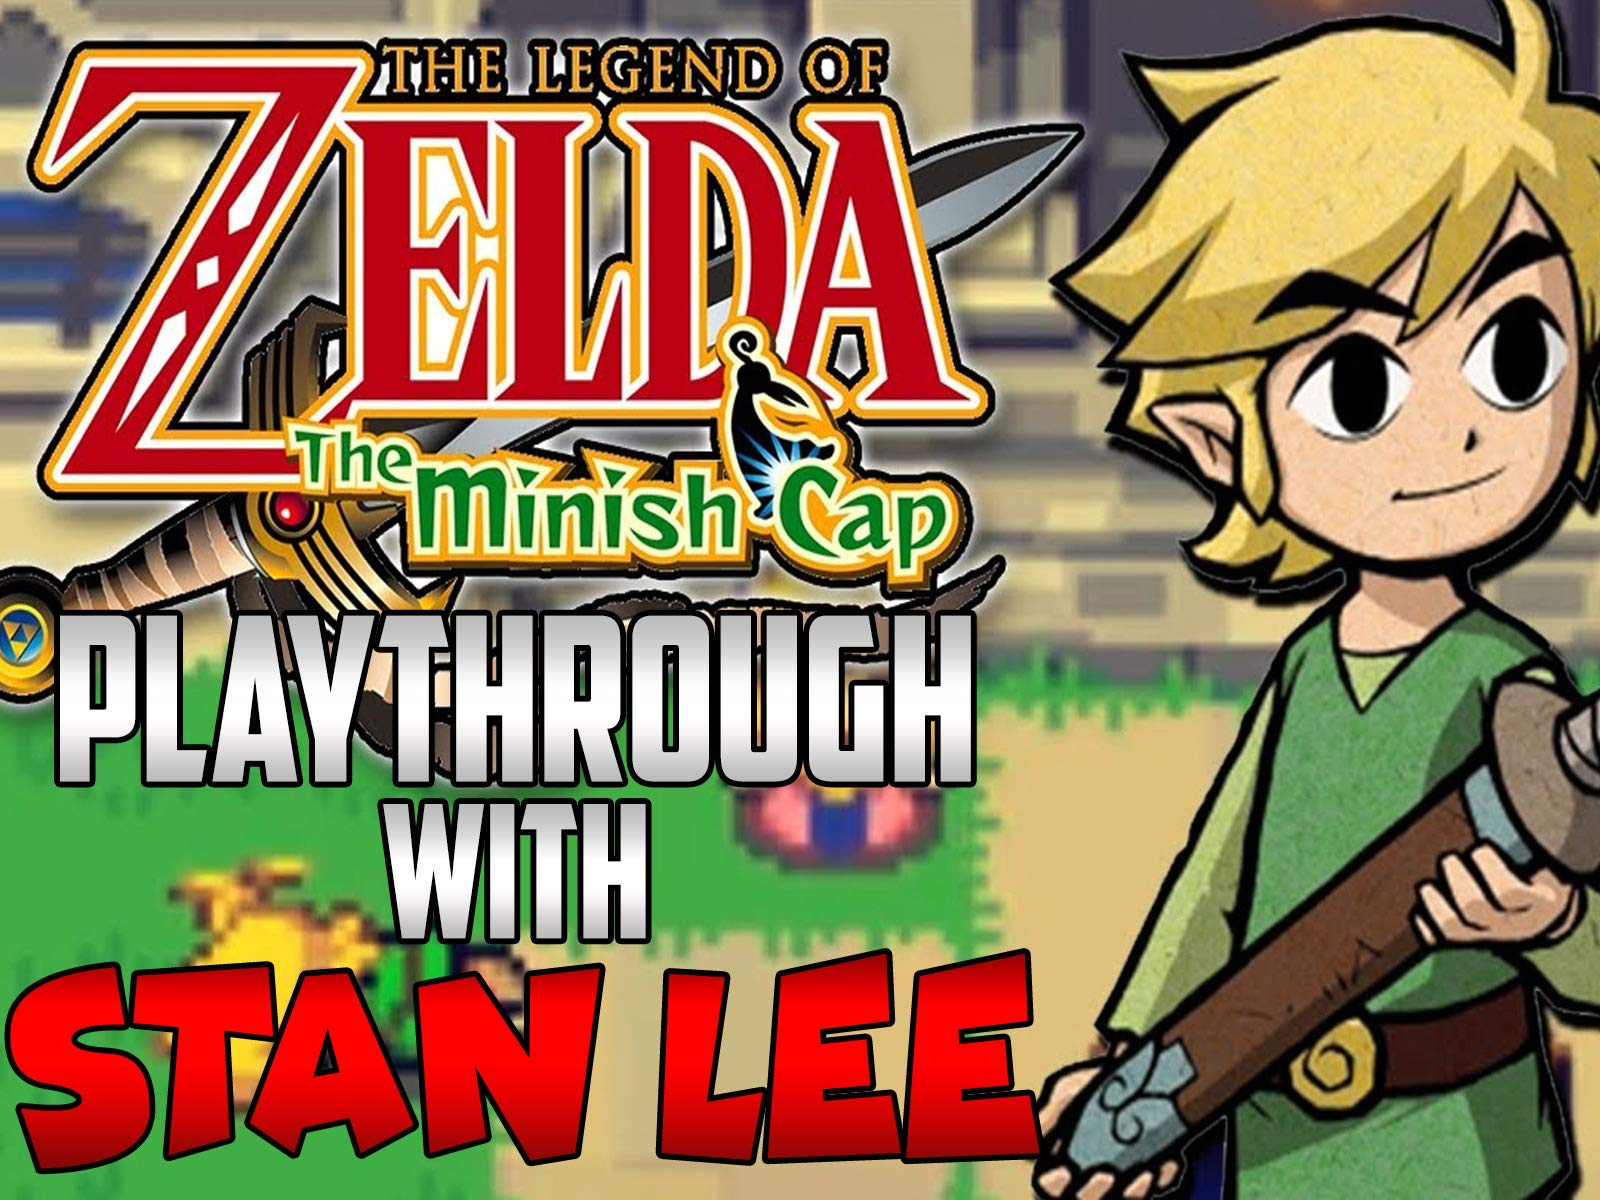 Clip: The Legend of Zelda The Minish Cap Playthrough With Stan Lee - Season 1